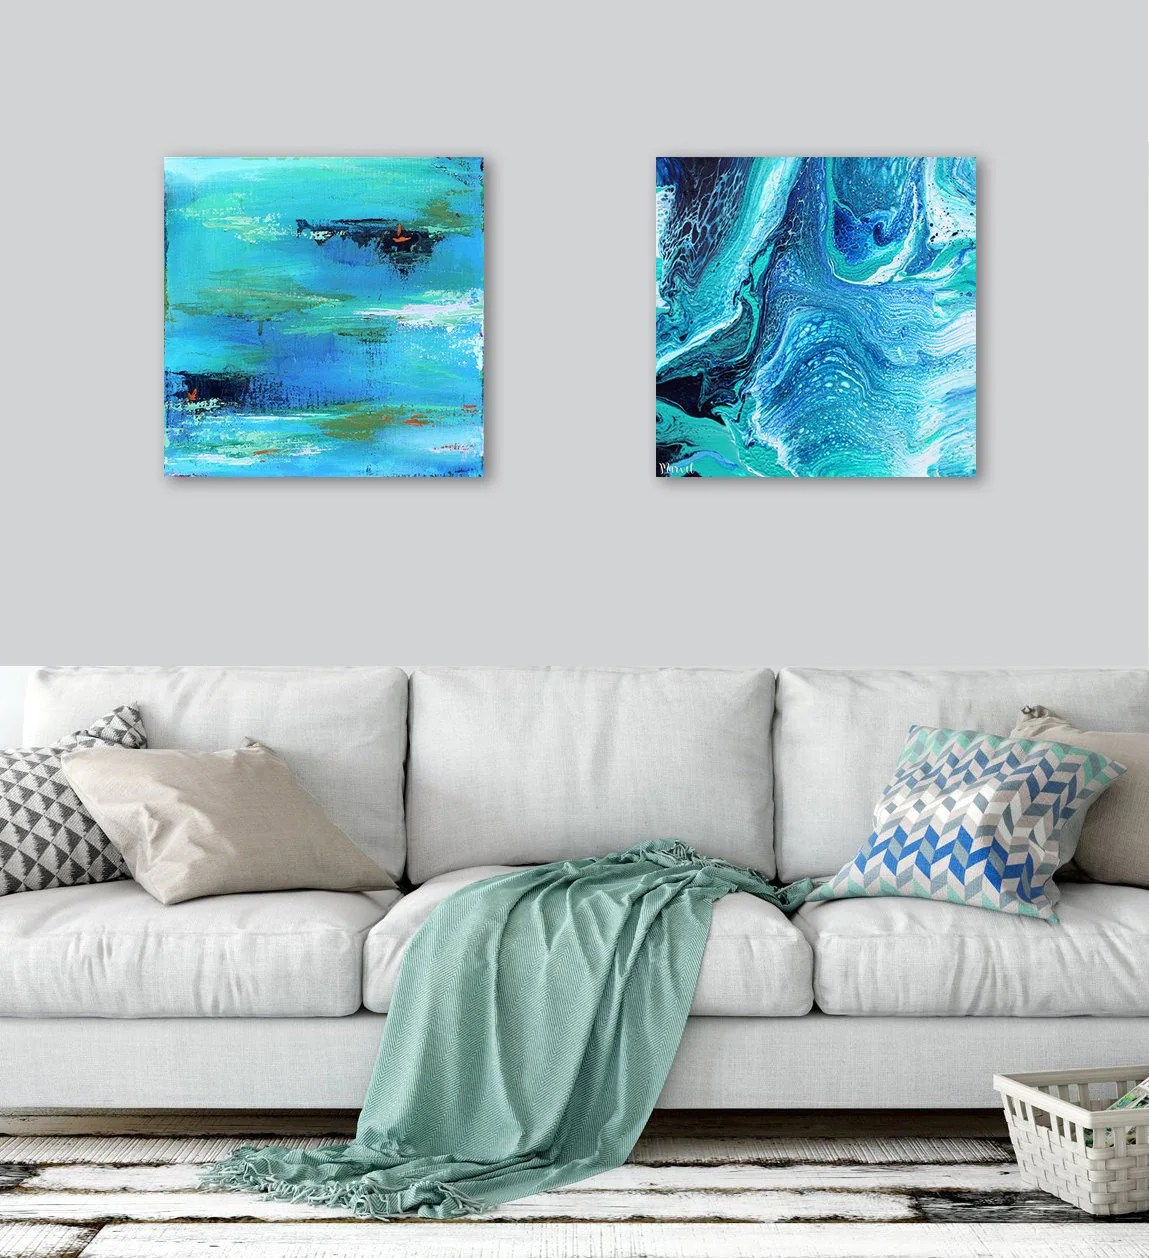 Abstract Art Prints On Canvas 2 20x20 Abstract Art Prints Canvas Large Wall Art Abstract Landscape Pour Painting Blue Green Turquoise Art Set Of 2 Prints On Canvas